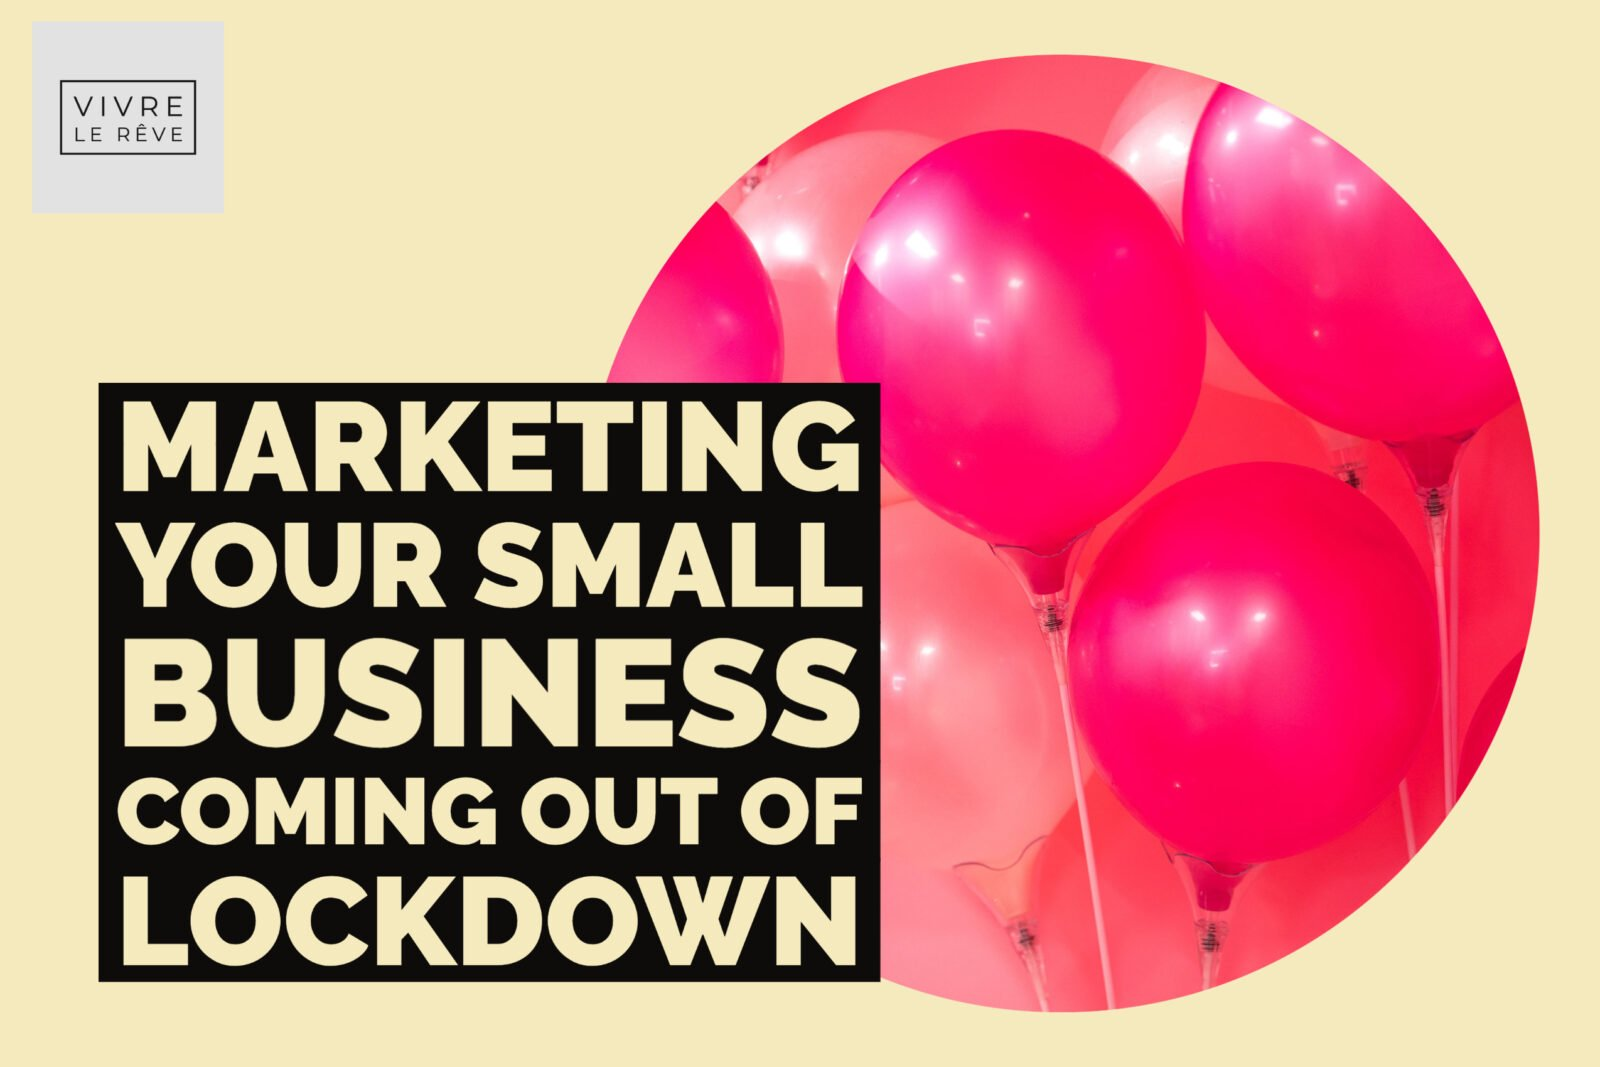 Marketing Your Small Business Coming out of Lockdown